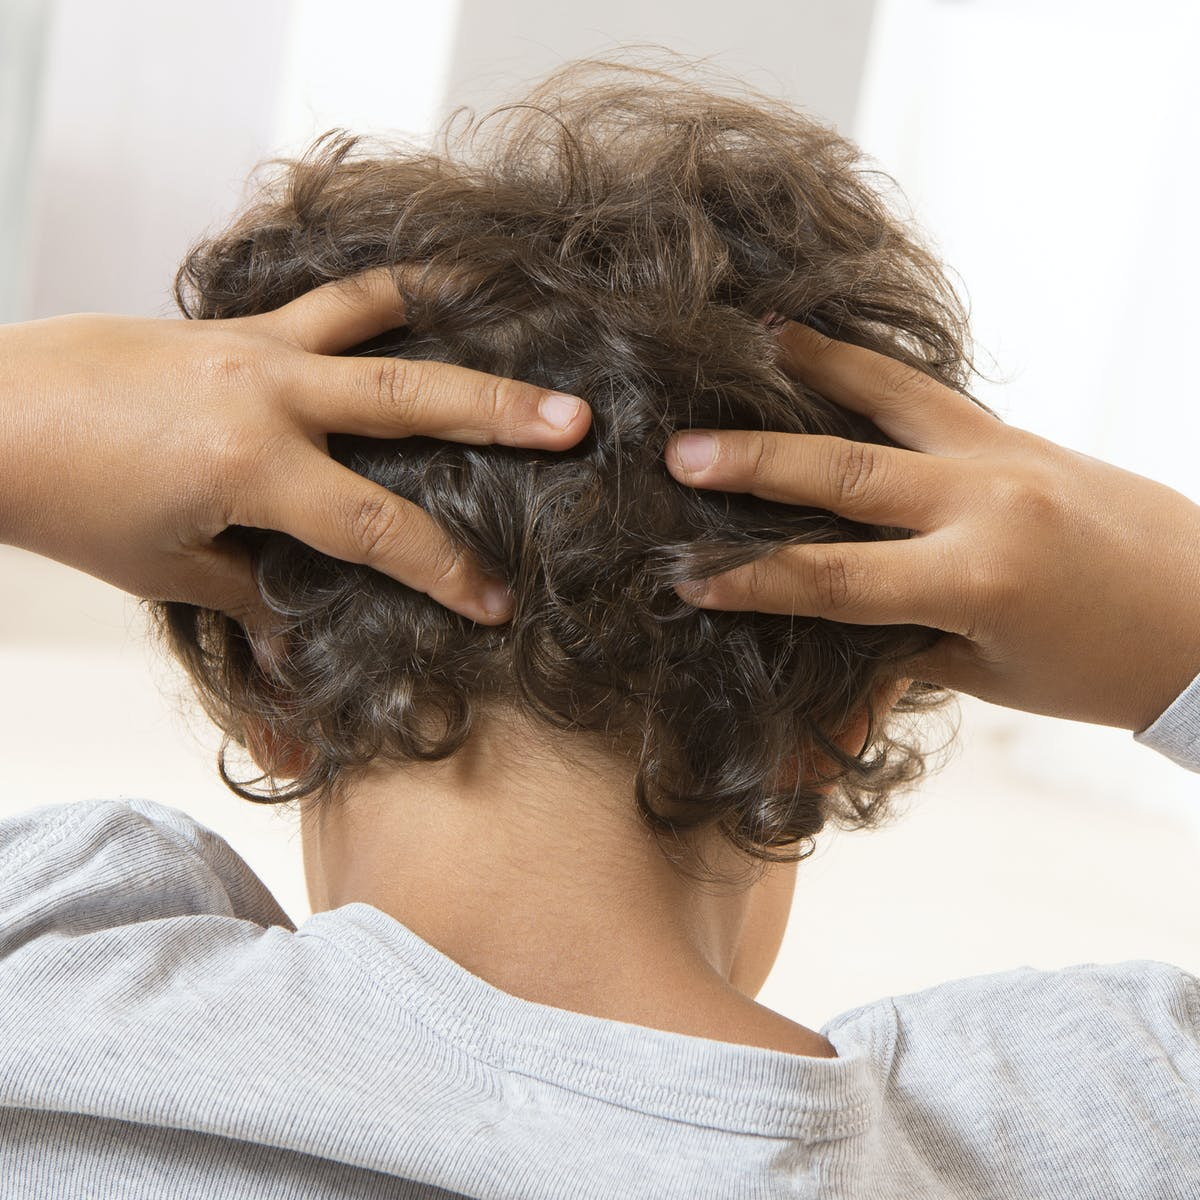 Health Check: how do you catch – and get rid of – head lice?